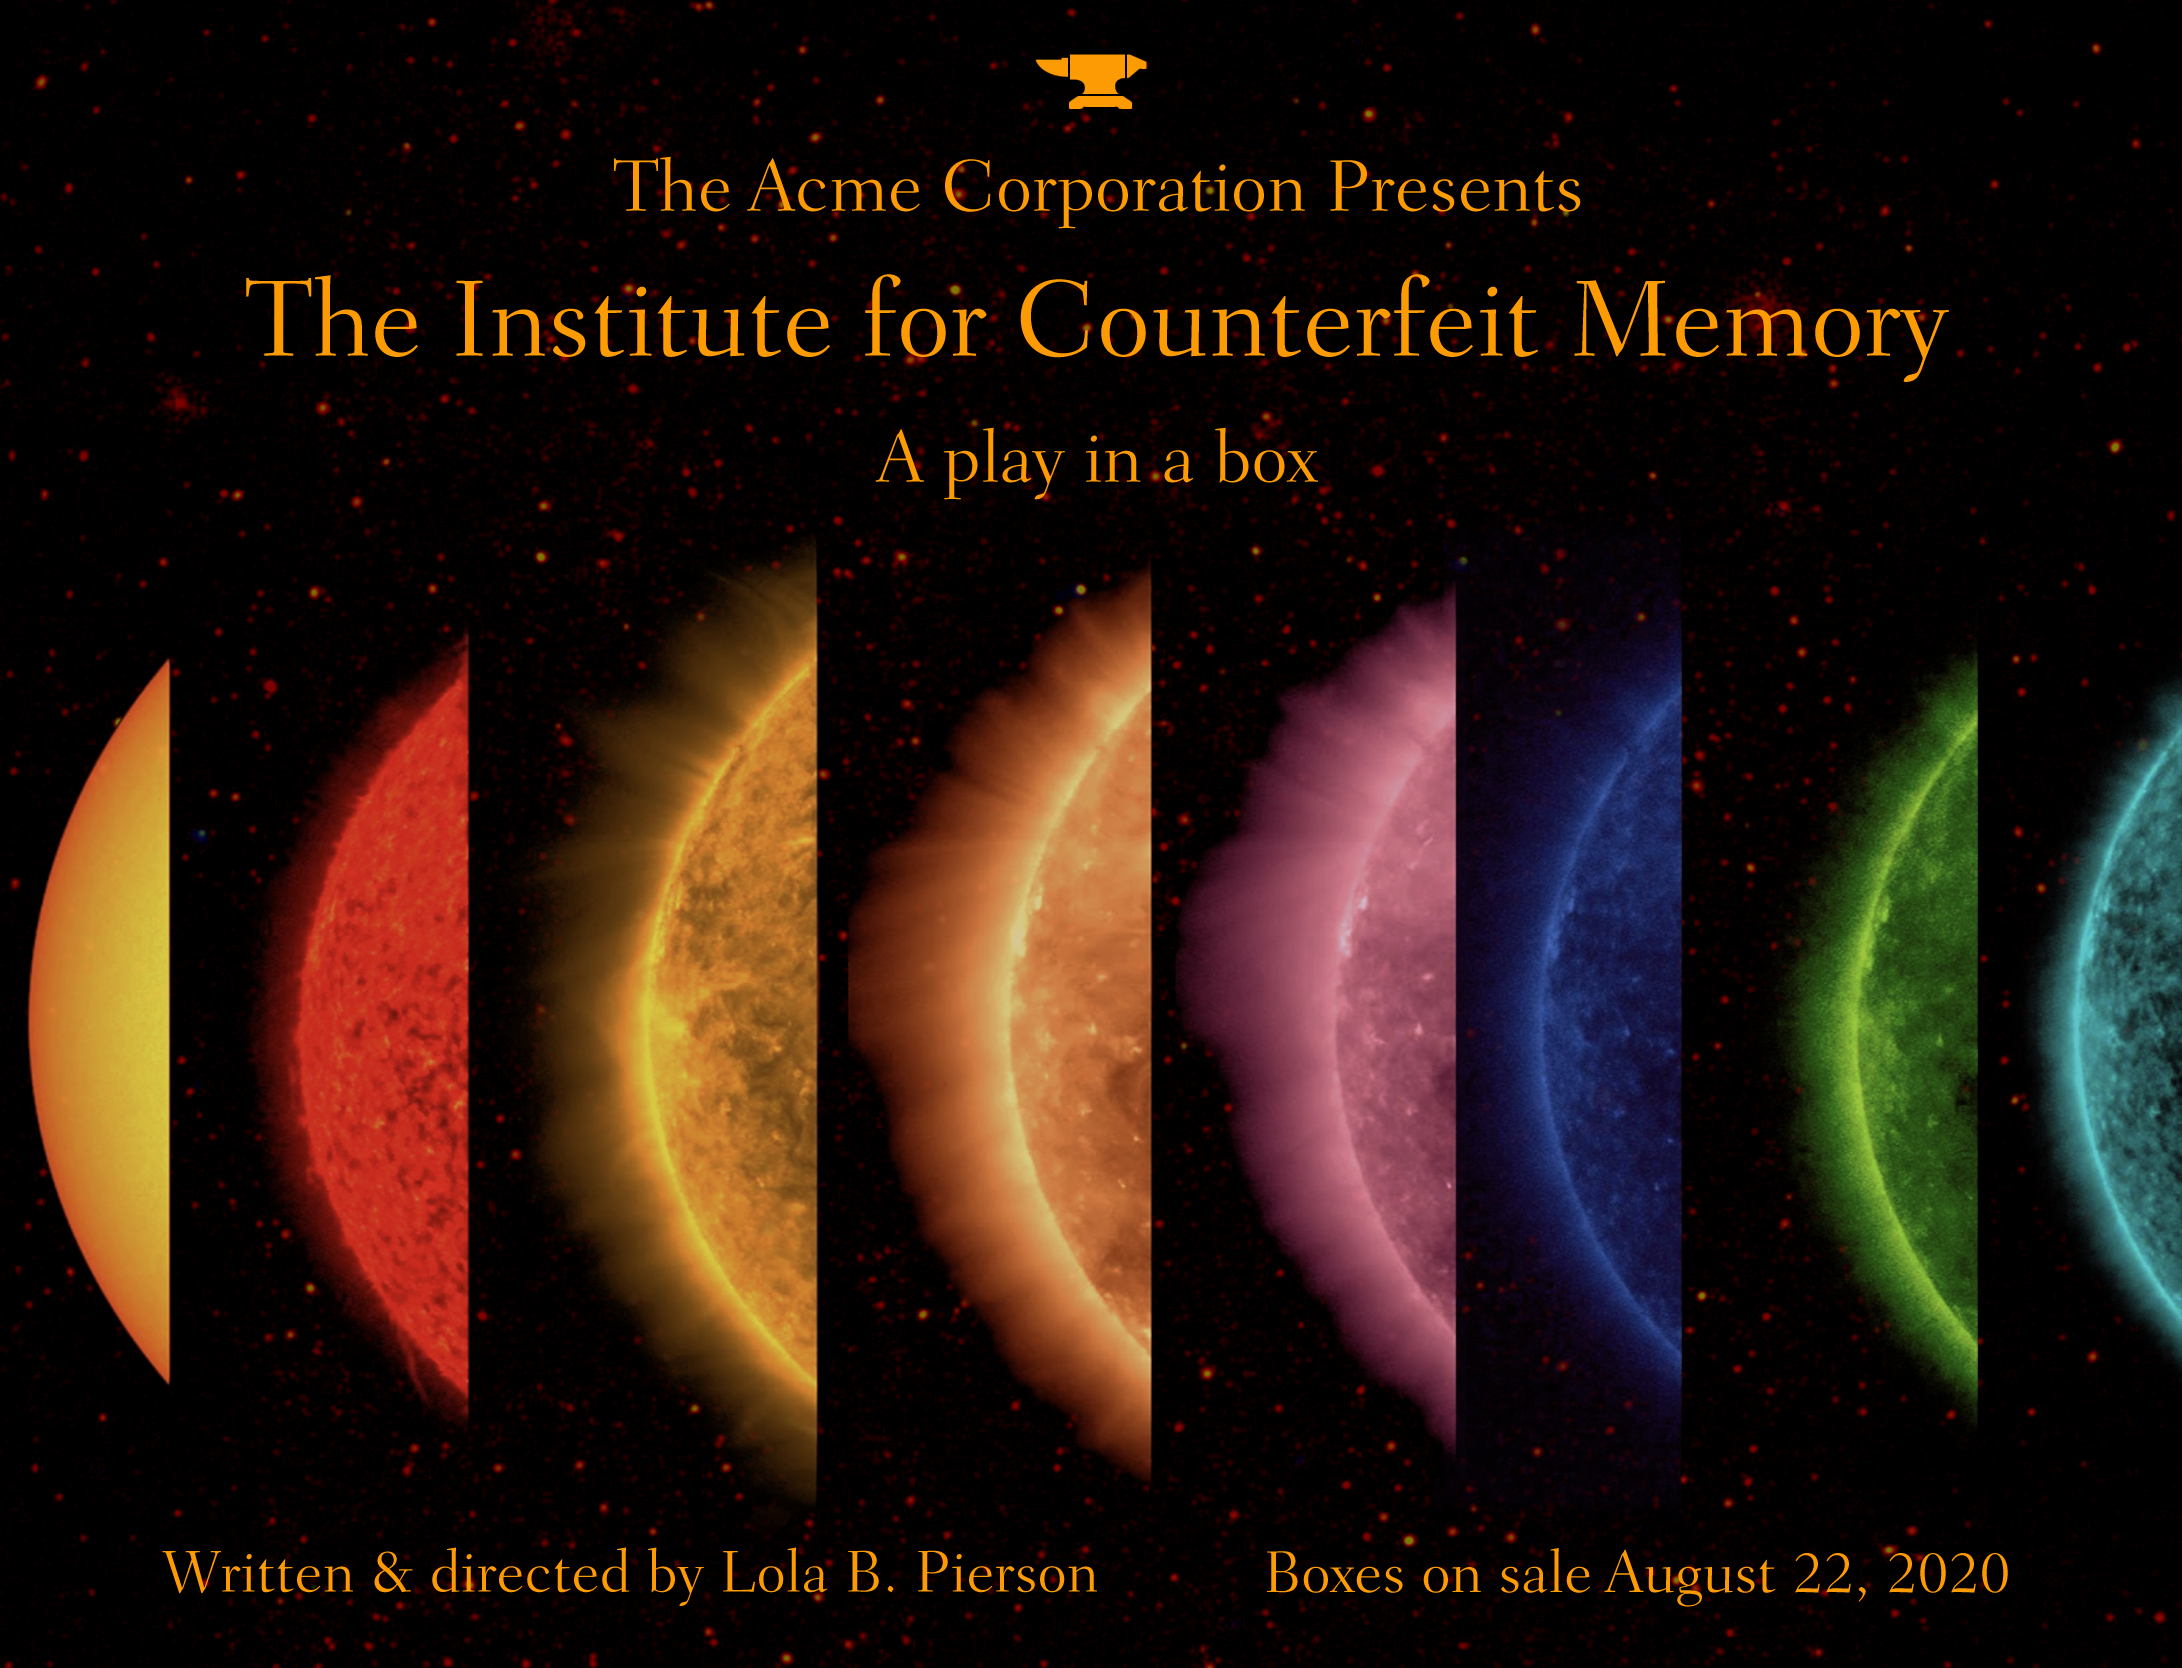 The Institute for Counterfeit Memory